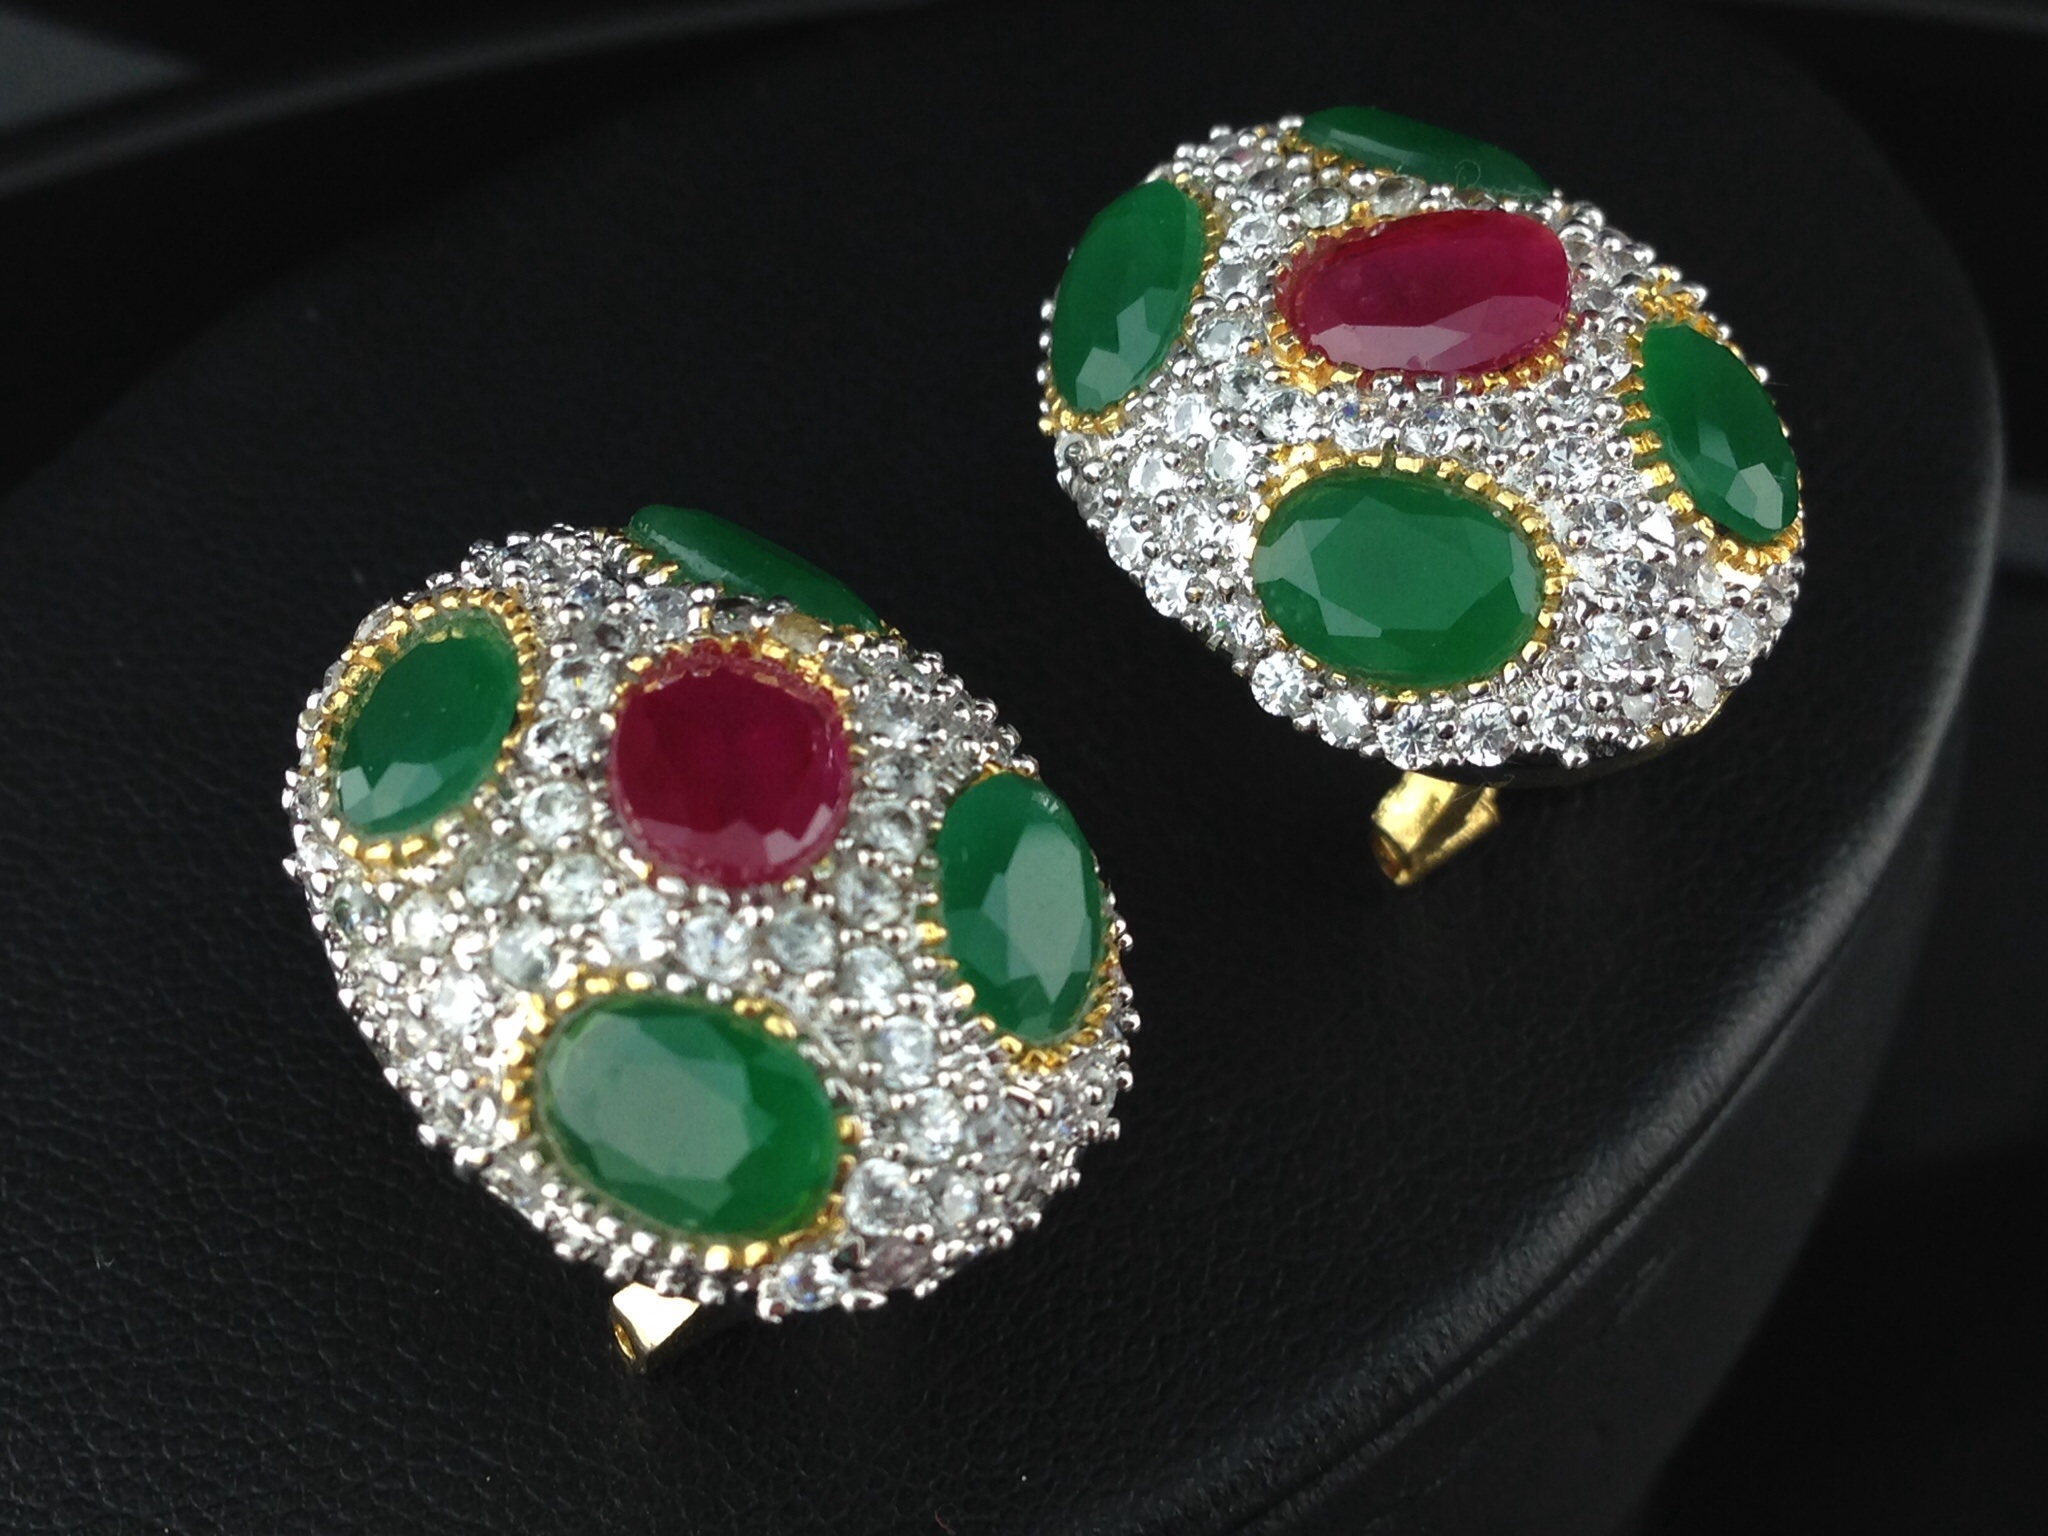 American Diamond CZ Tops With Emeralds and Rubies